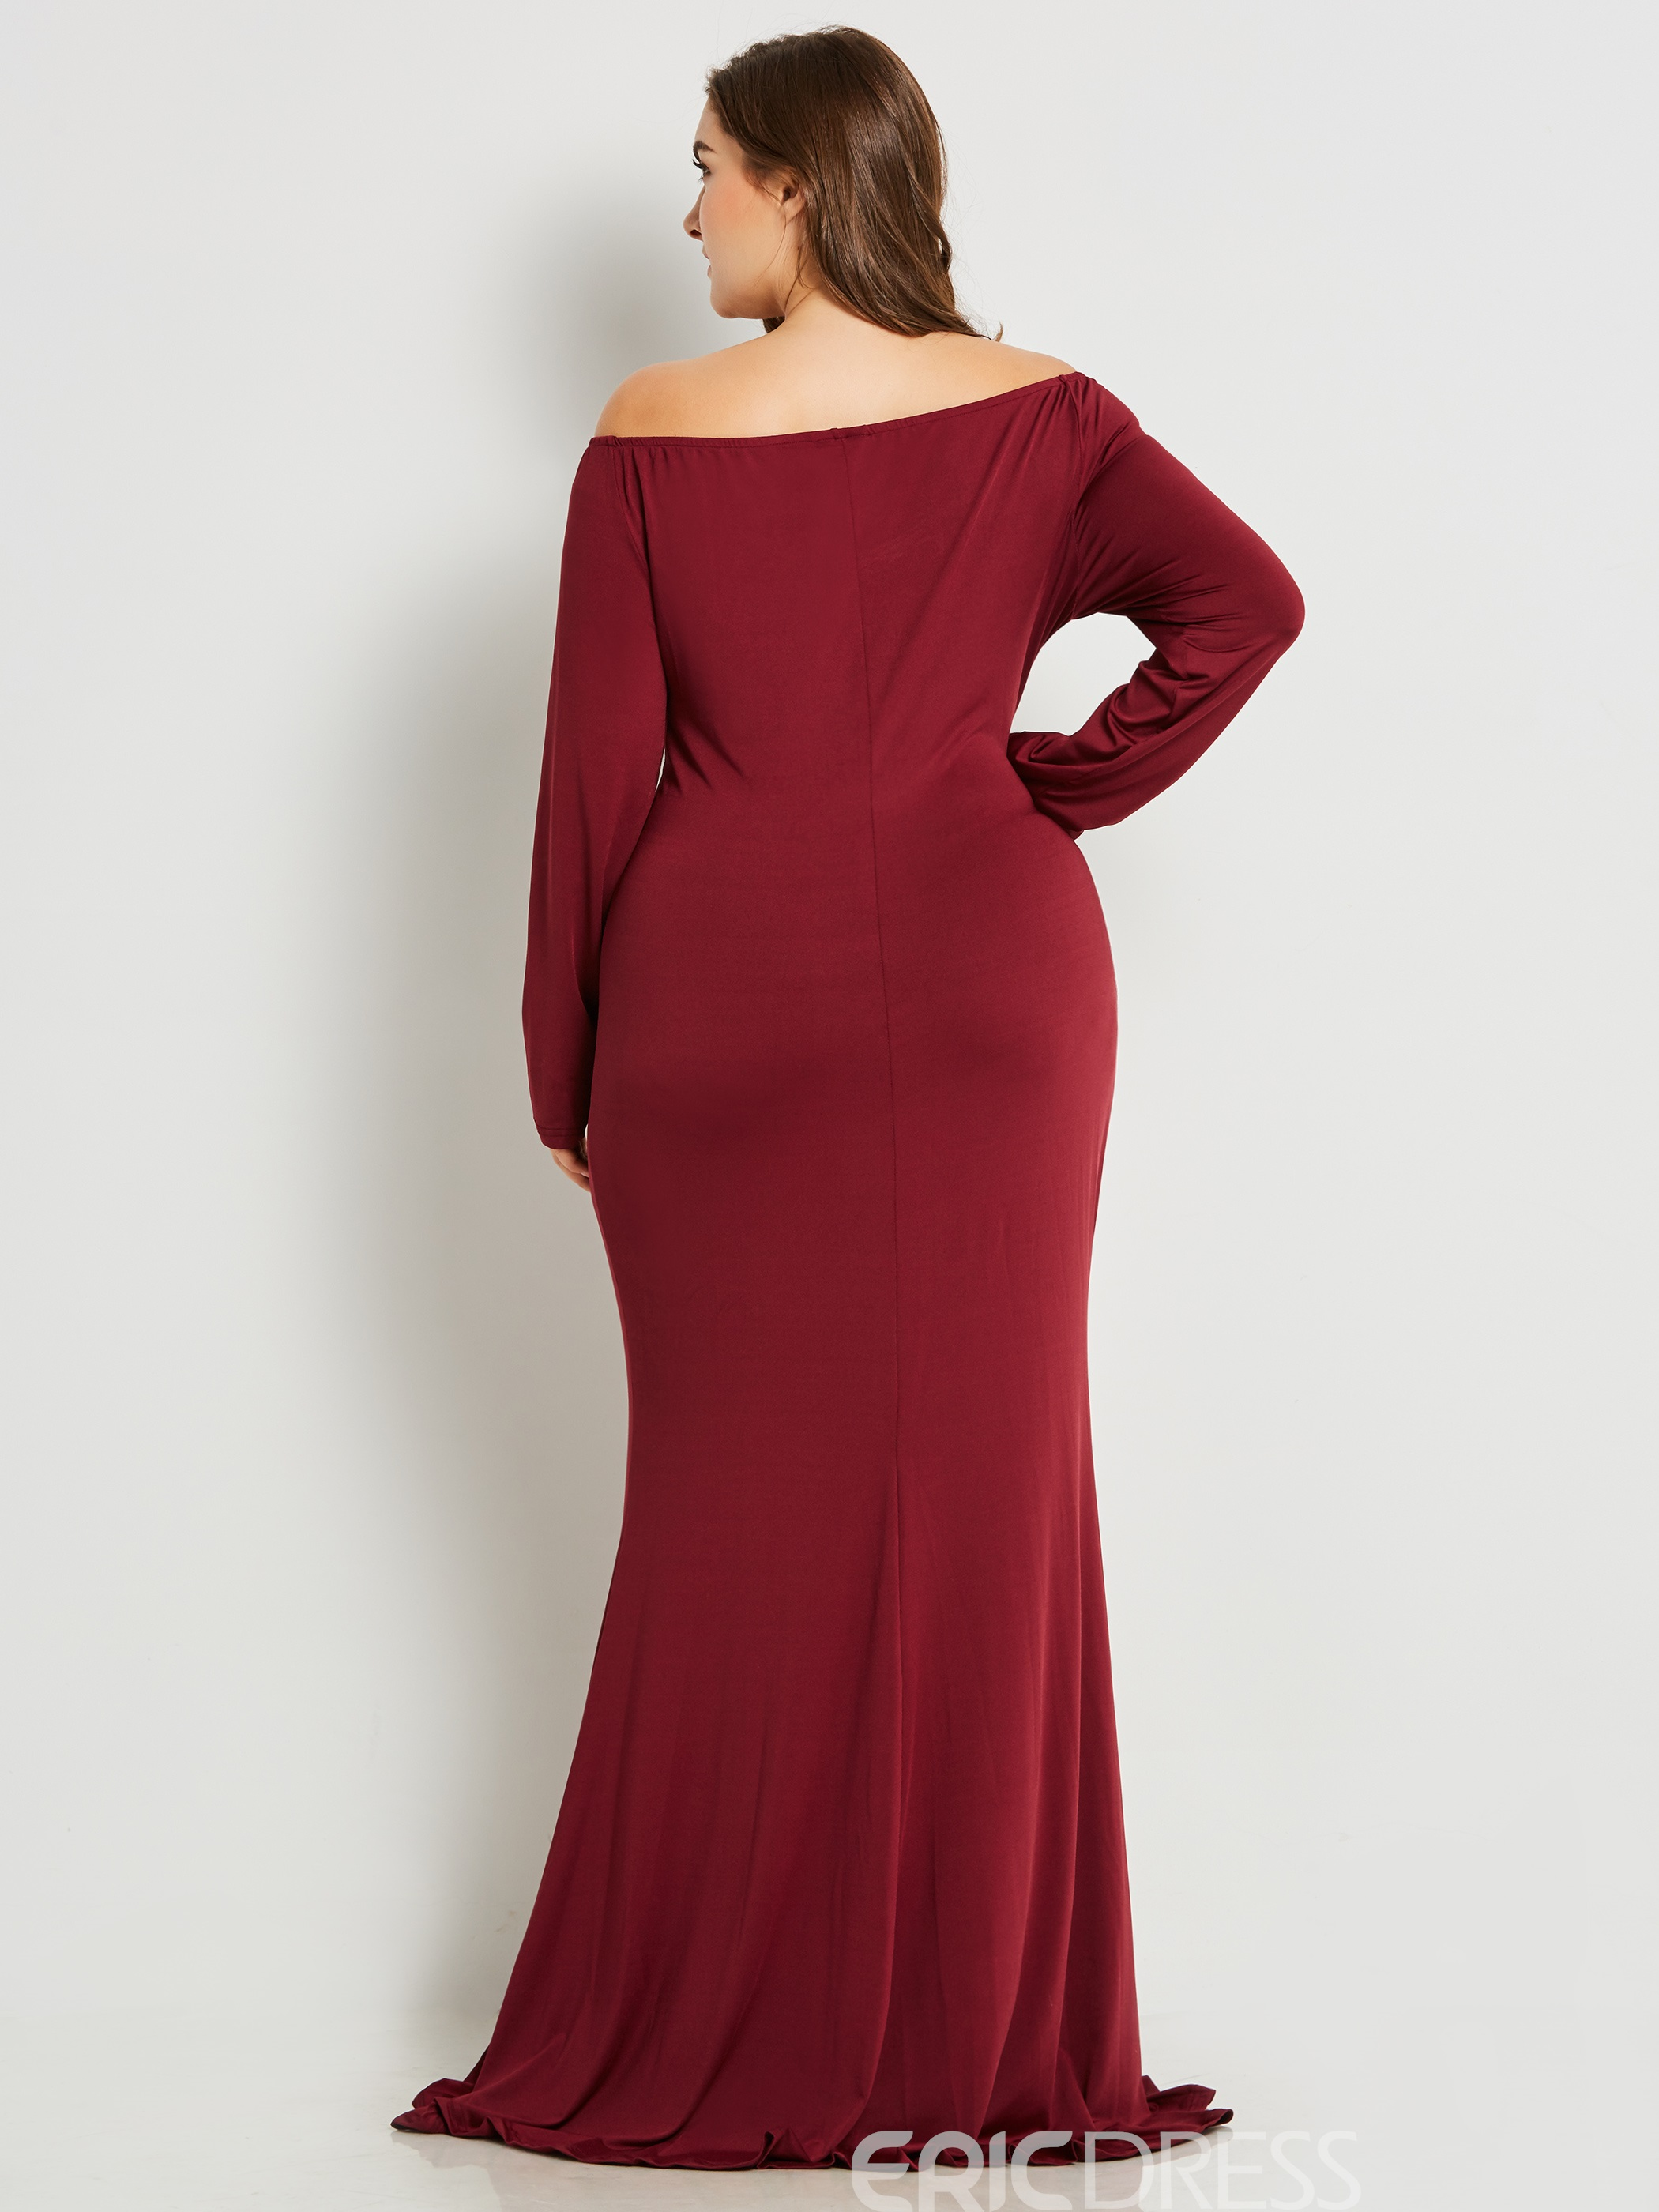 Ericdress Plus Size V-Neck Slim Pleated Solid Collar Maxi Dress